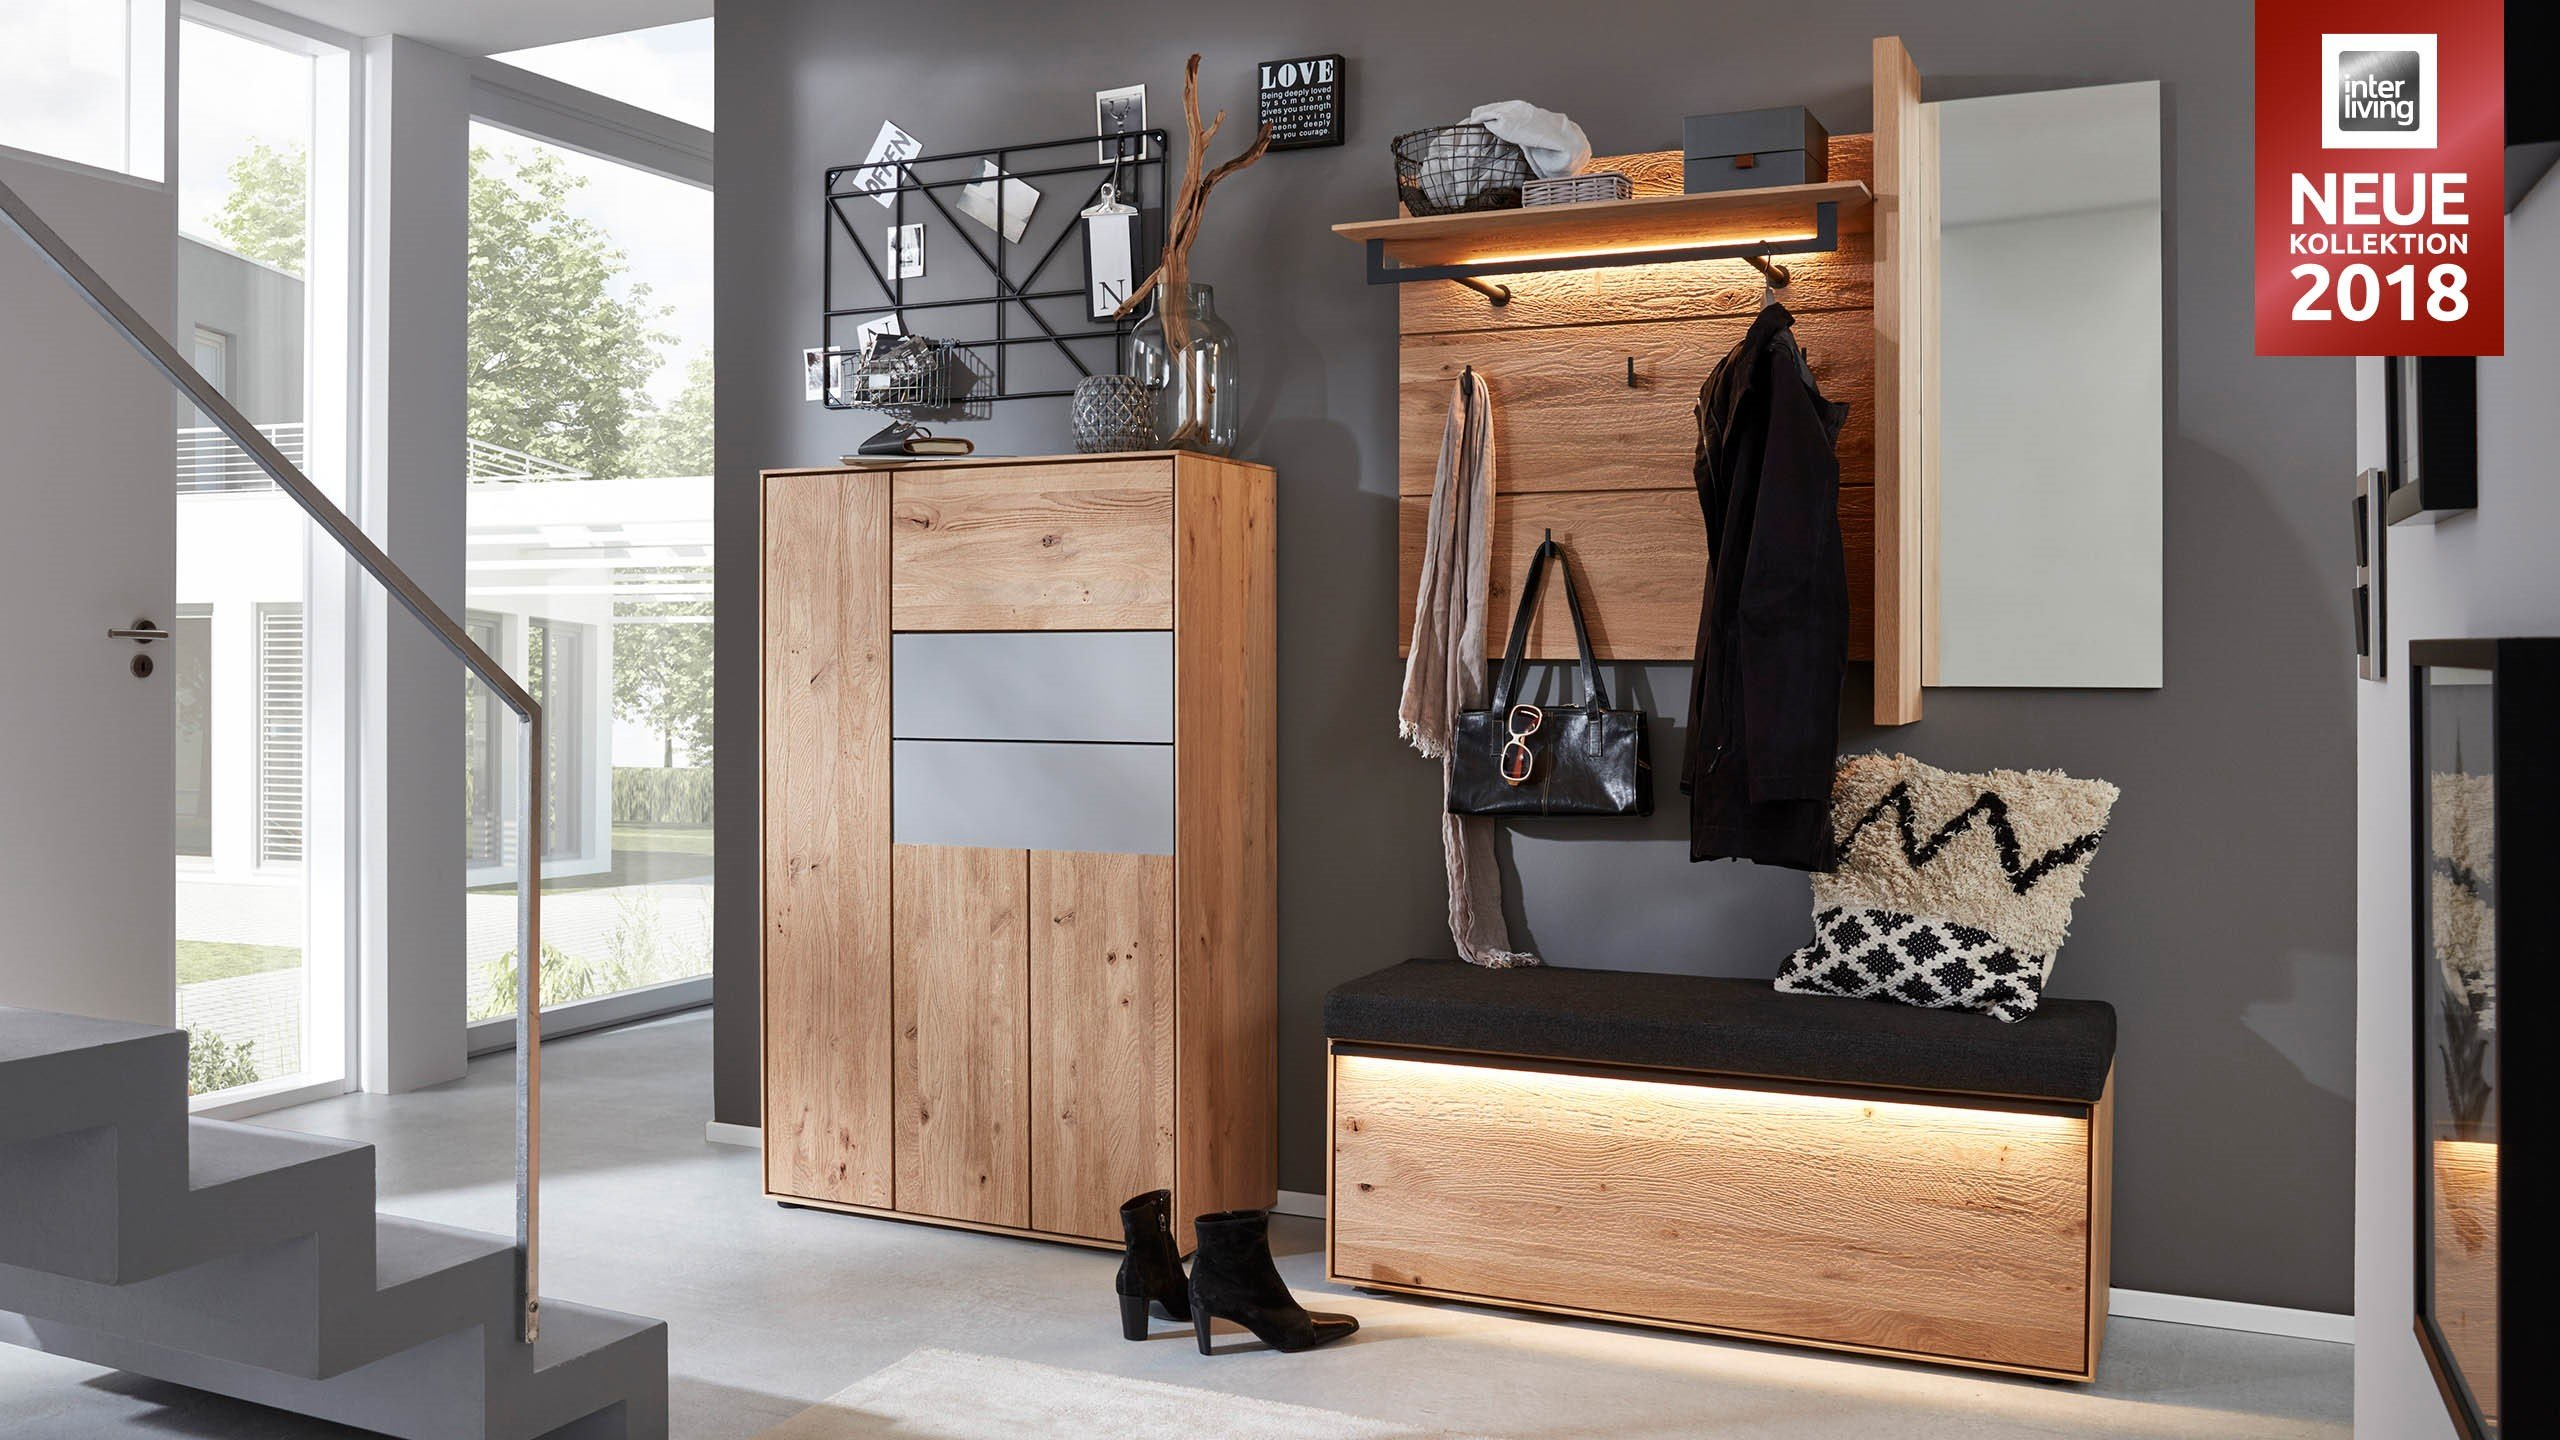 interliving garderoben serie 6004 interliving m bel f r mich gemacht. Black Bedroom Furniture Sets. Home Design Ideas